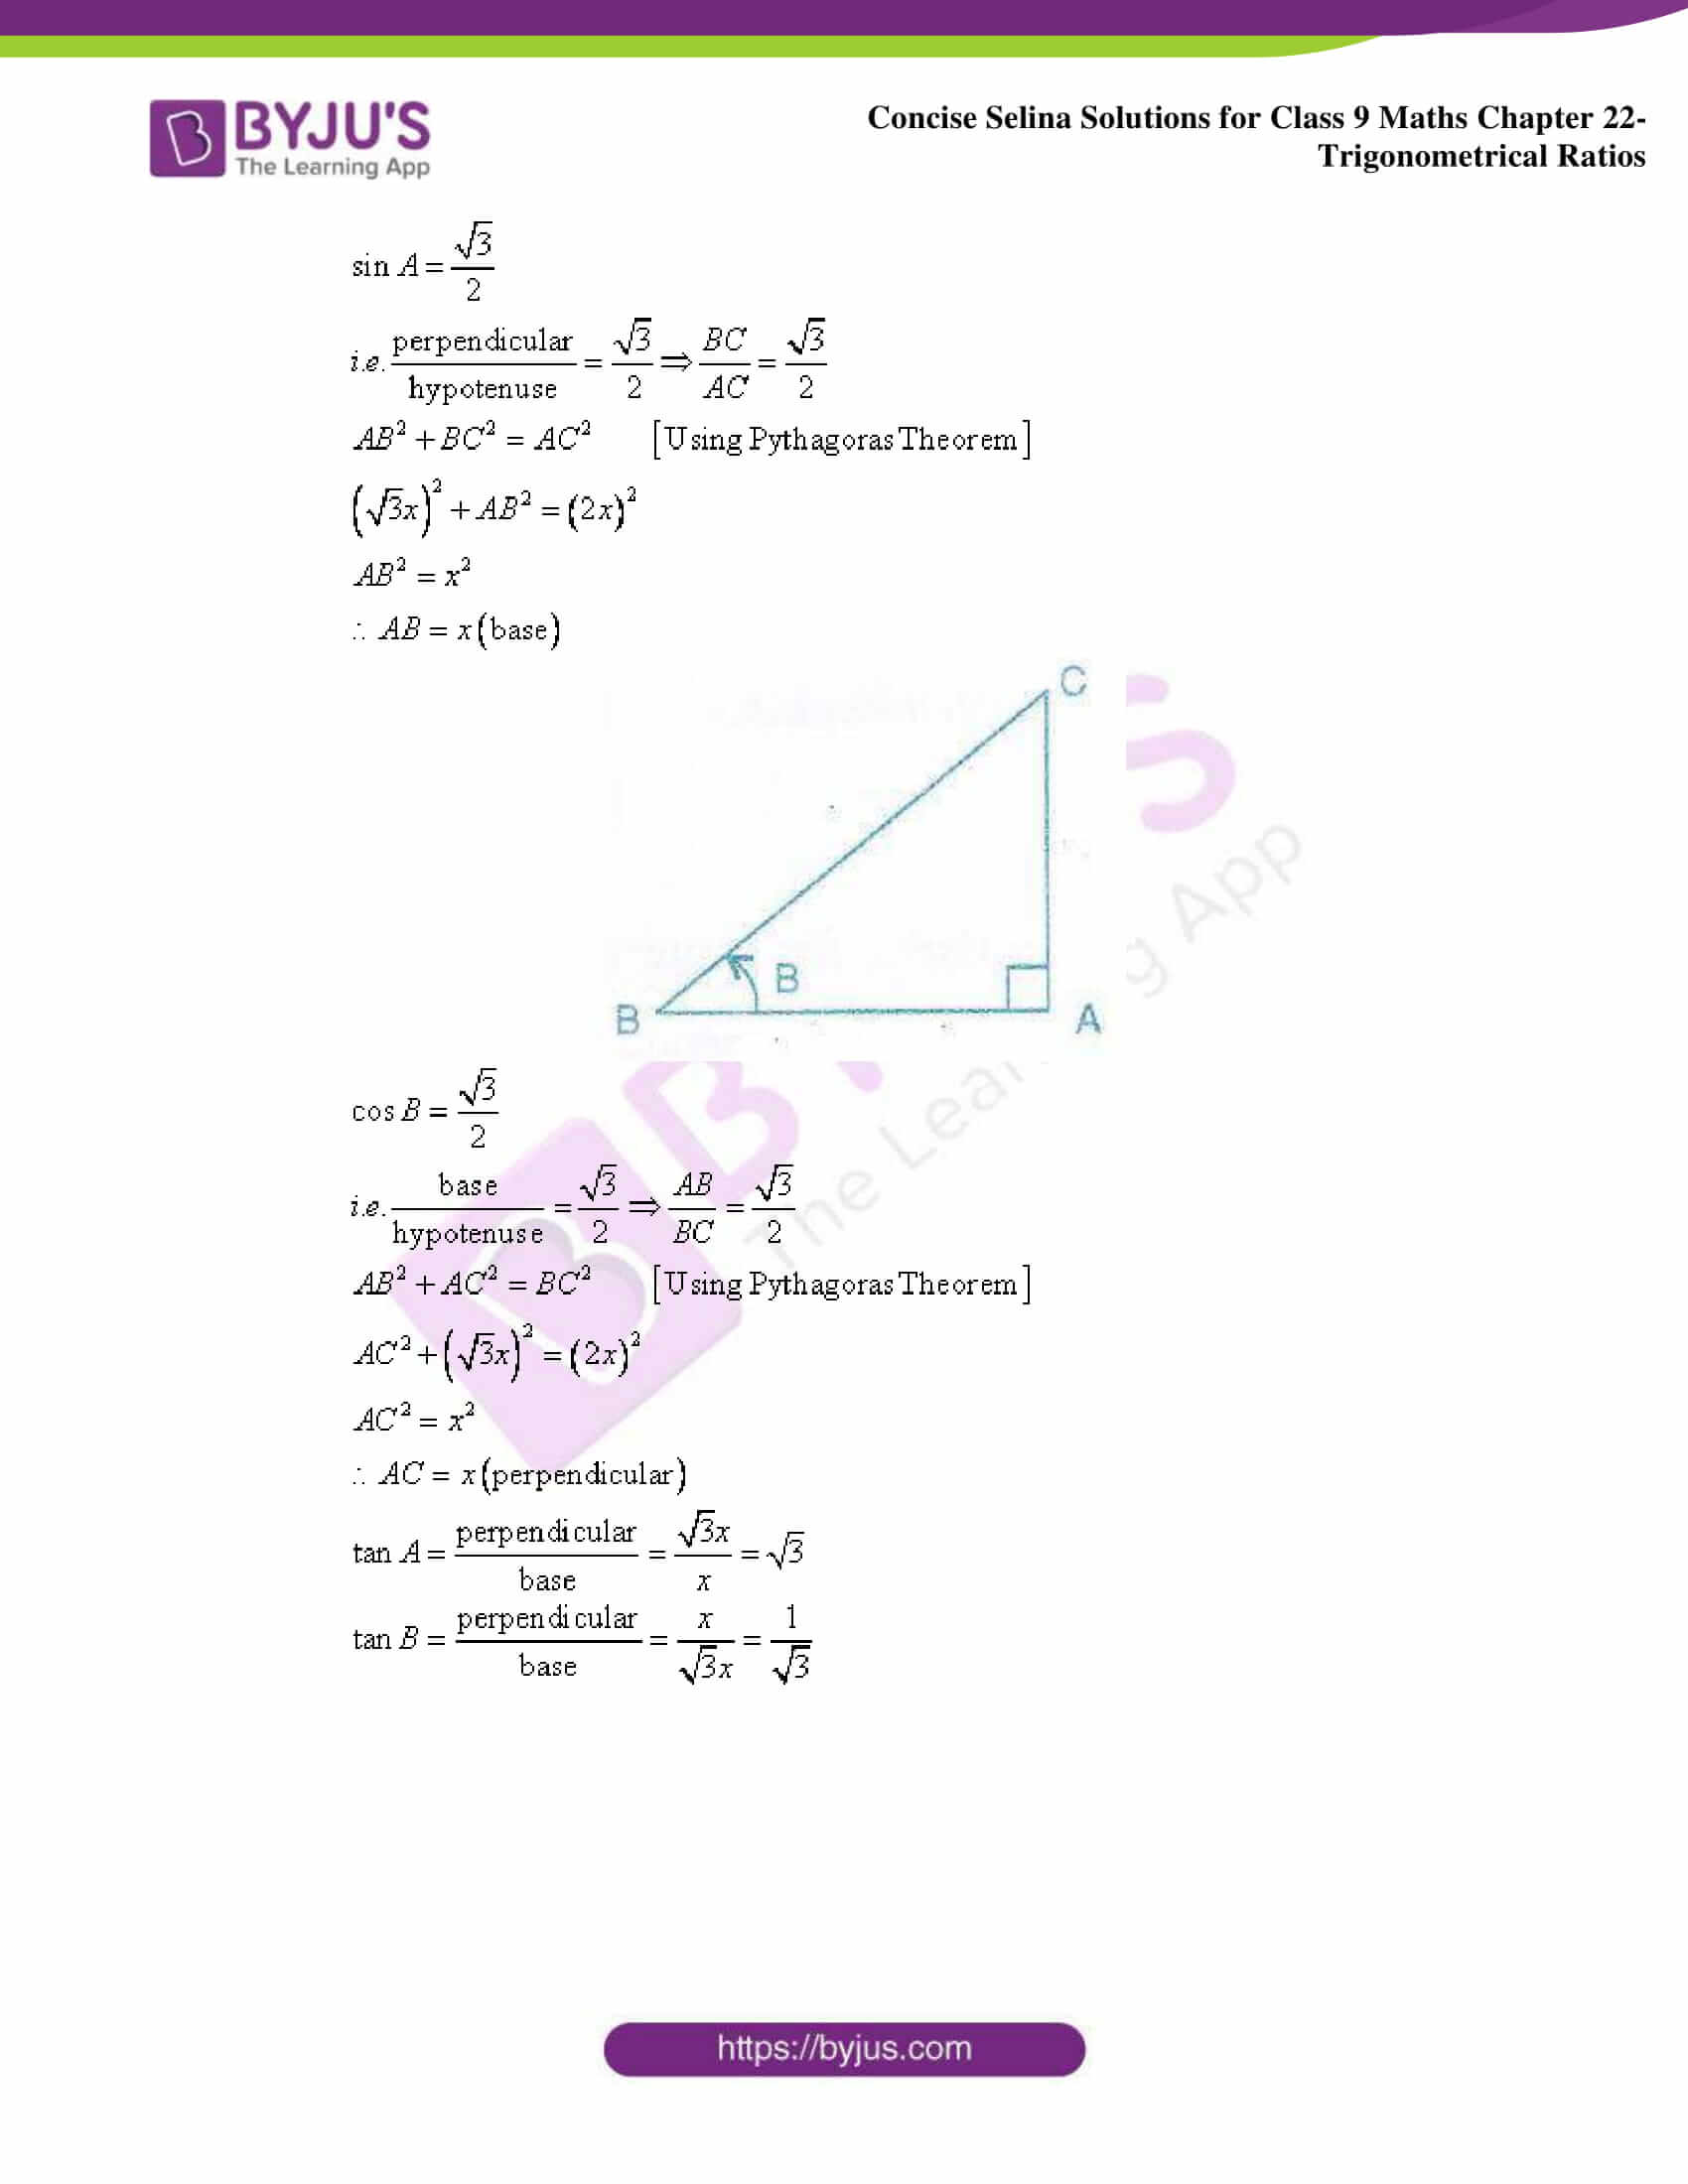 Concise Selina Solutions Class 9 Maths Chapter 22 Trigonometrical Ratios part 47